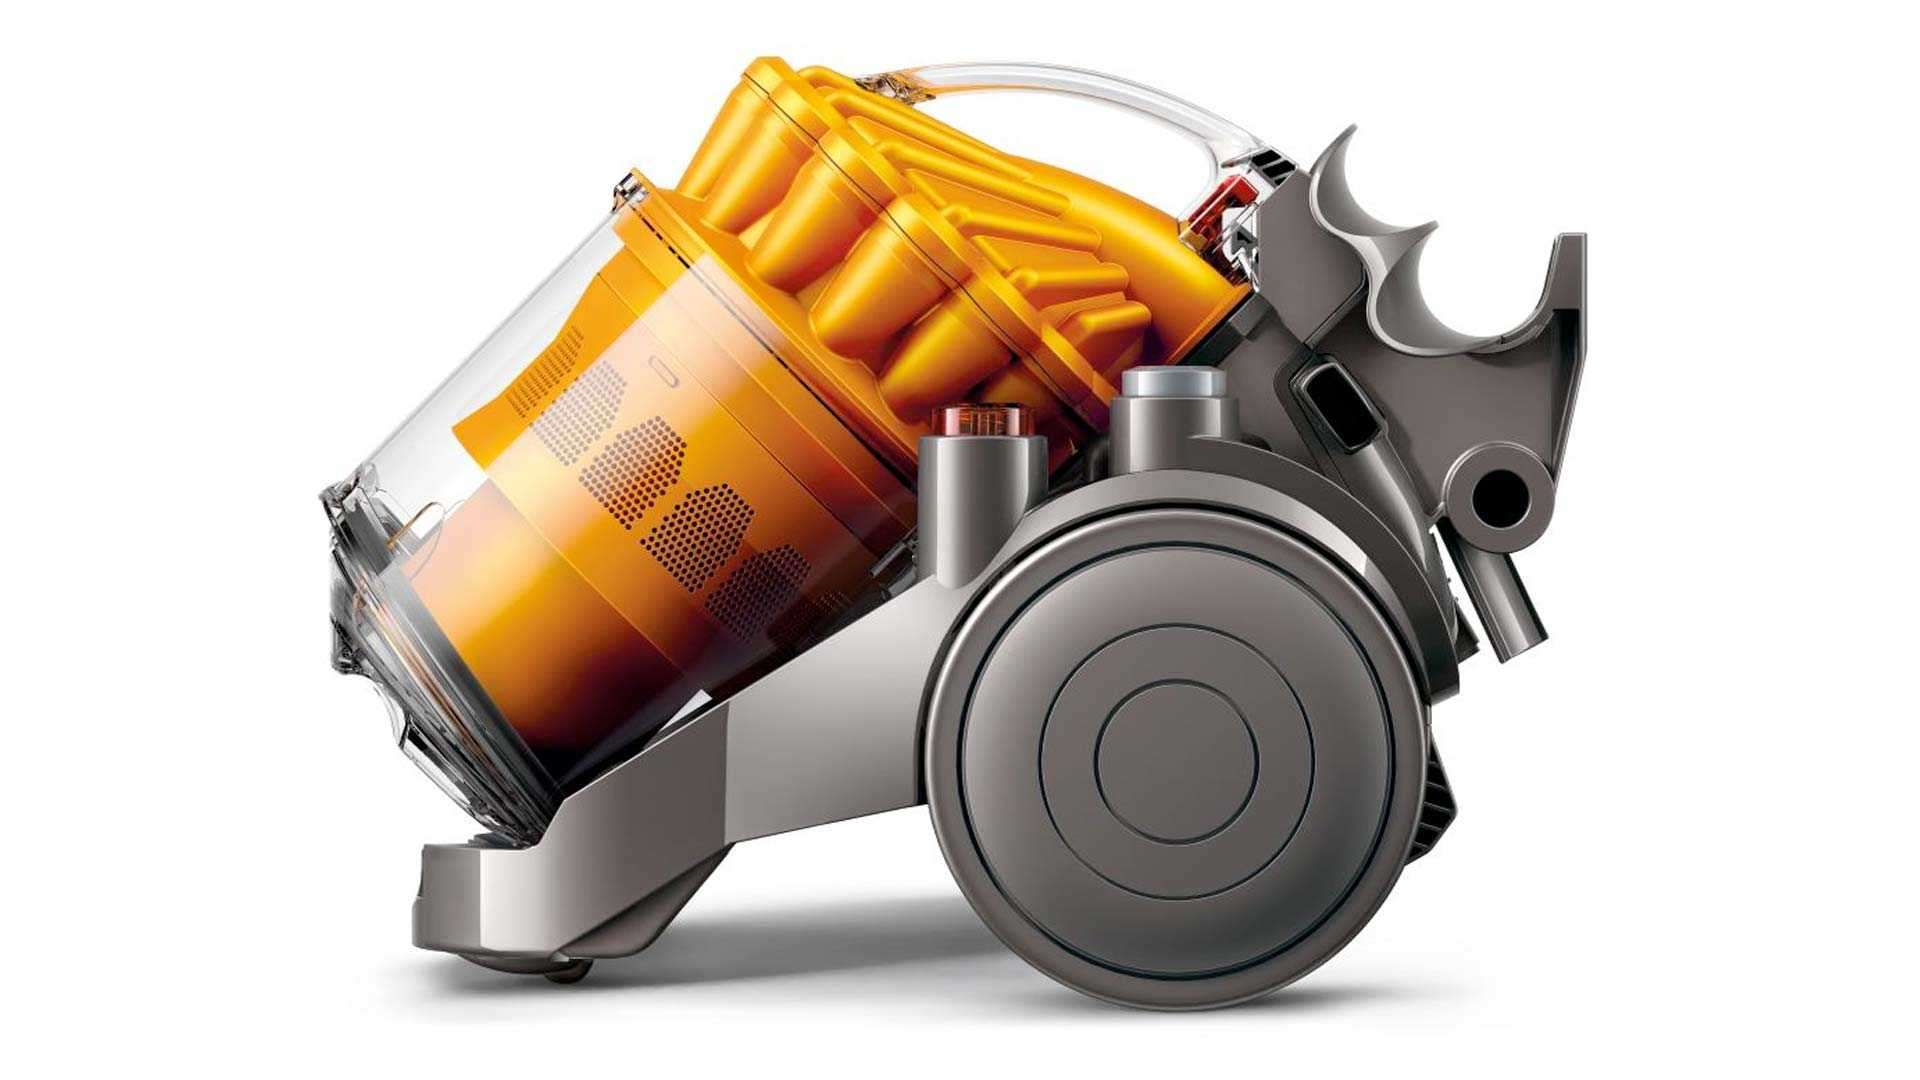 Dyson's innovative vaccuum cleaner uses industrial cyclone technology